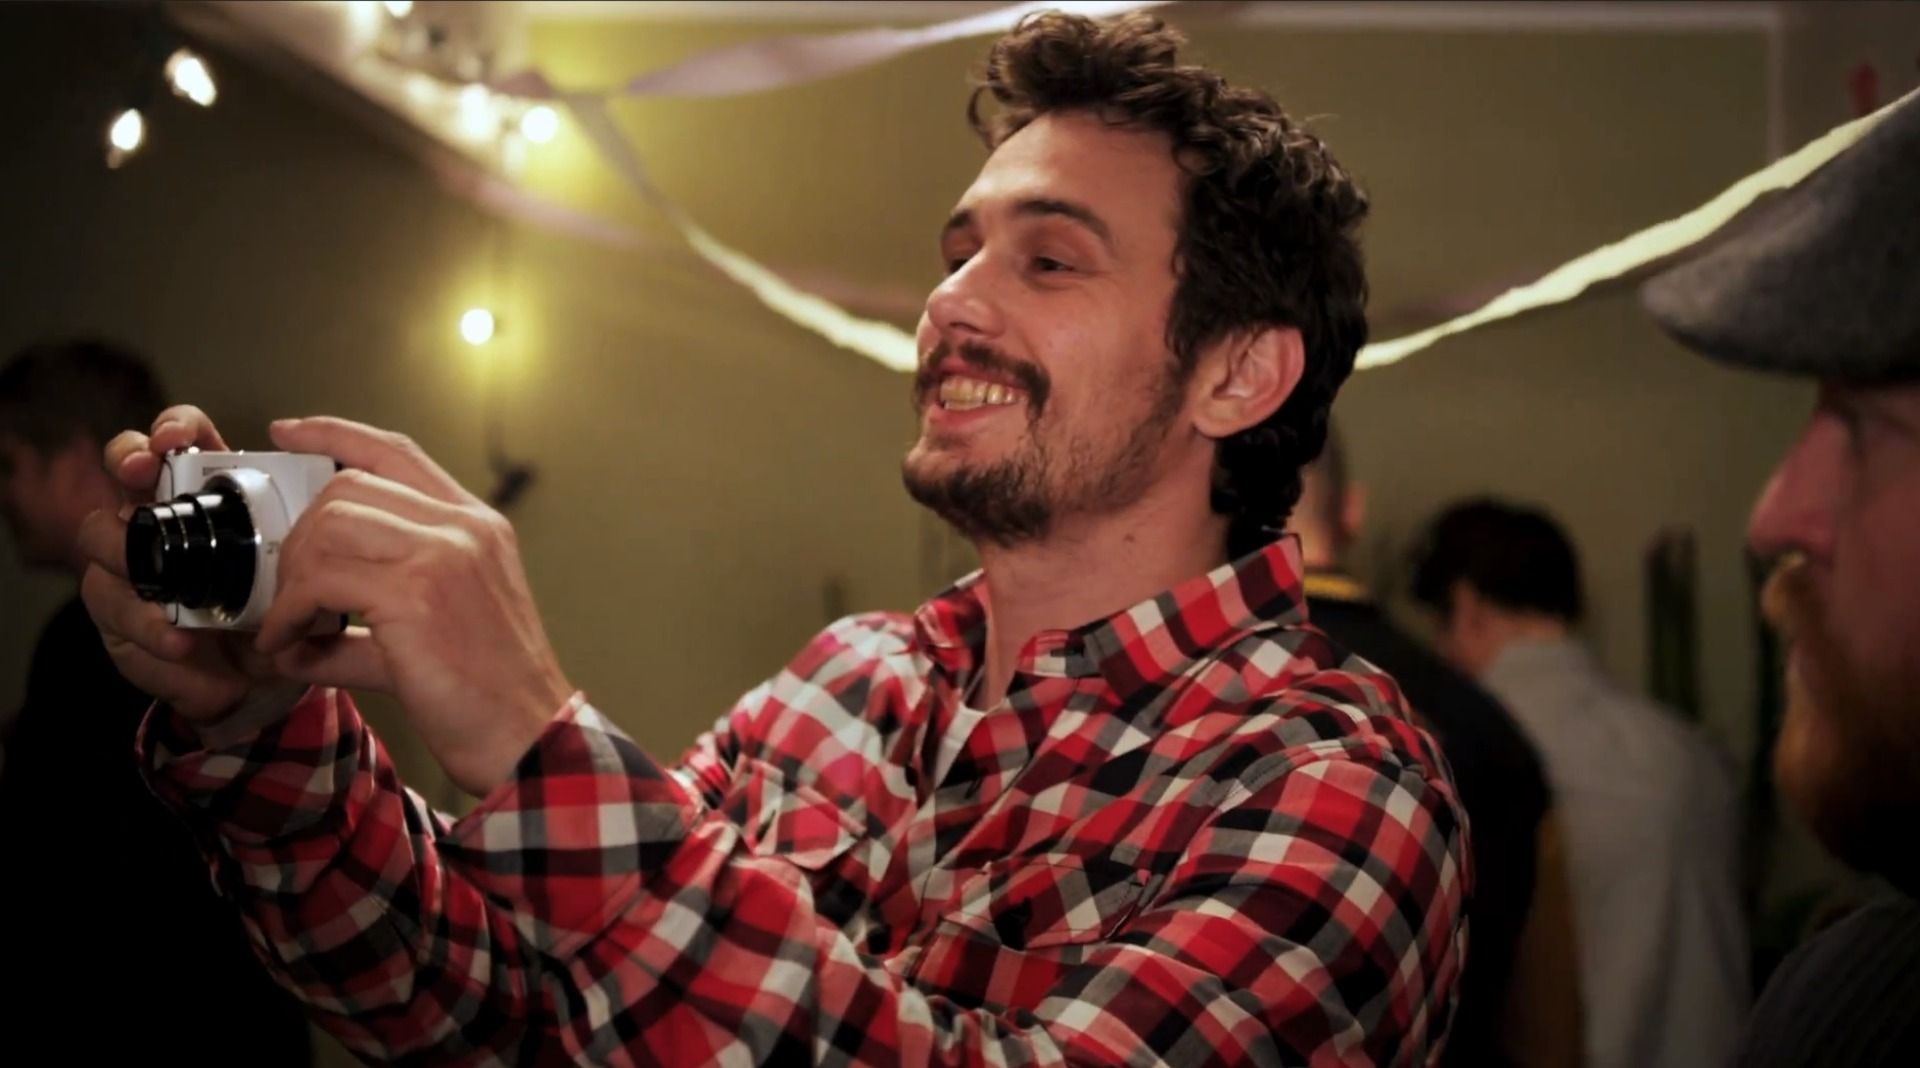 Novità Accessori| James Franco, nuovo video per Galaxy Camera!